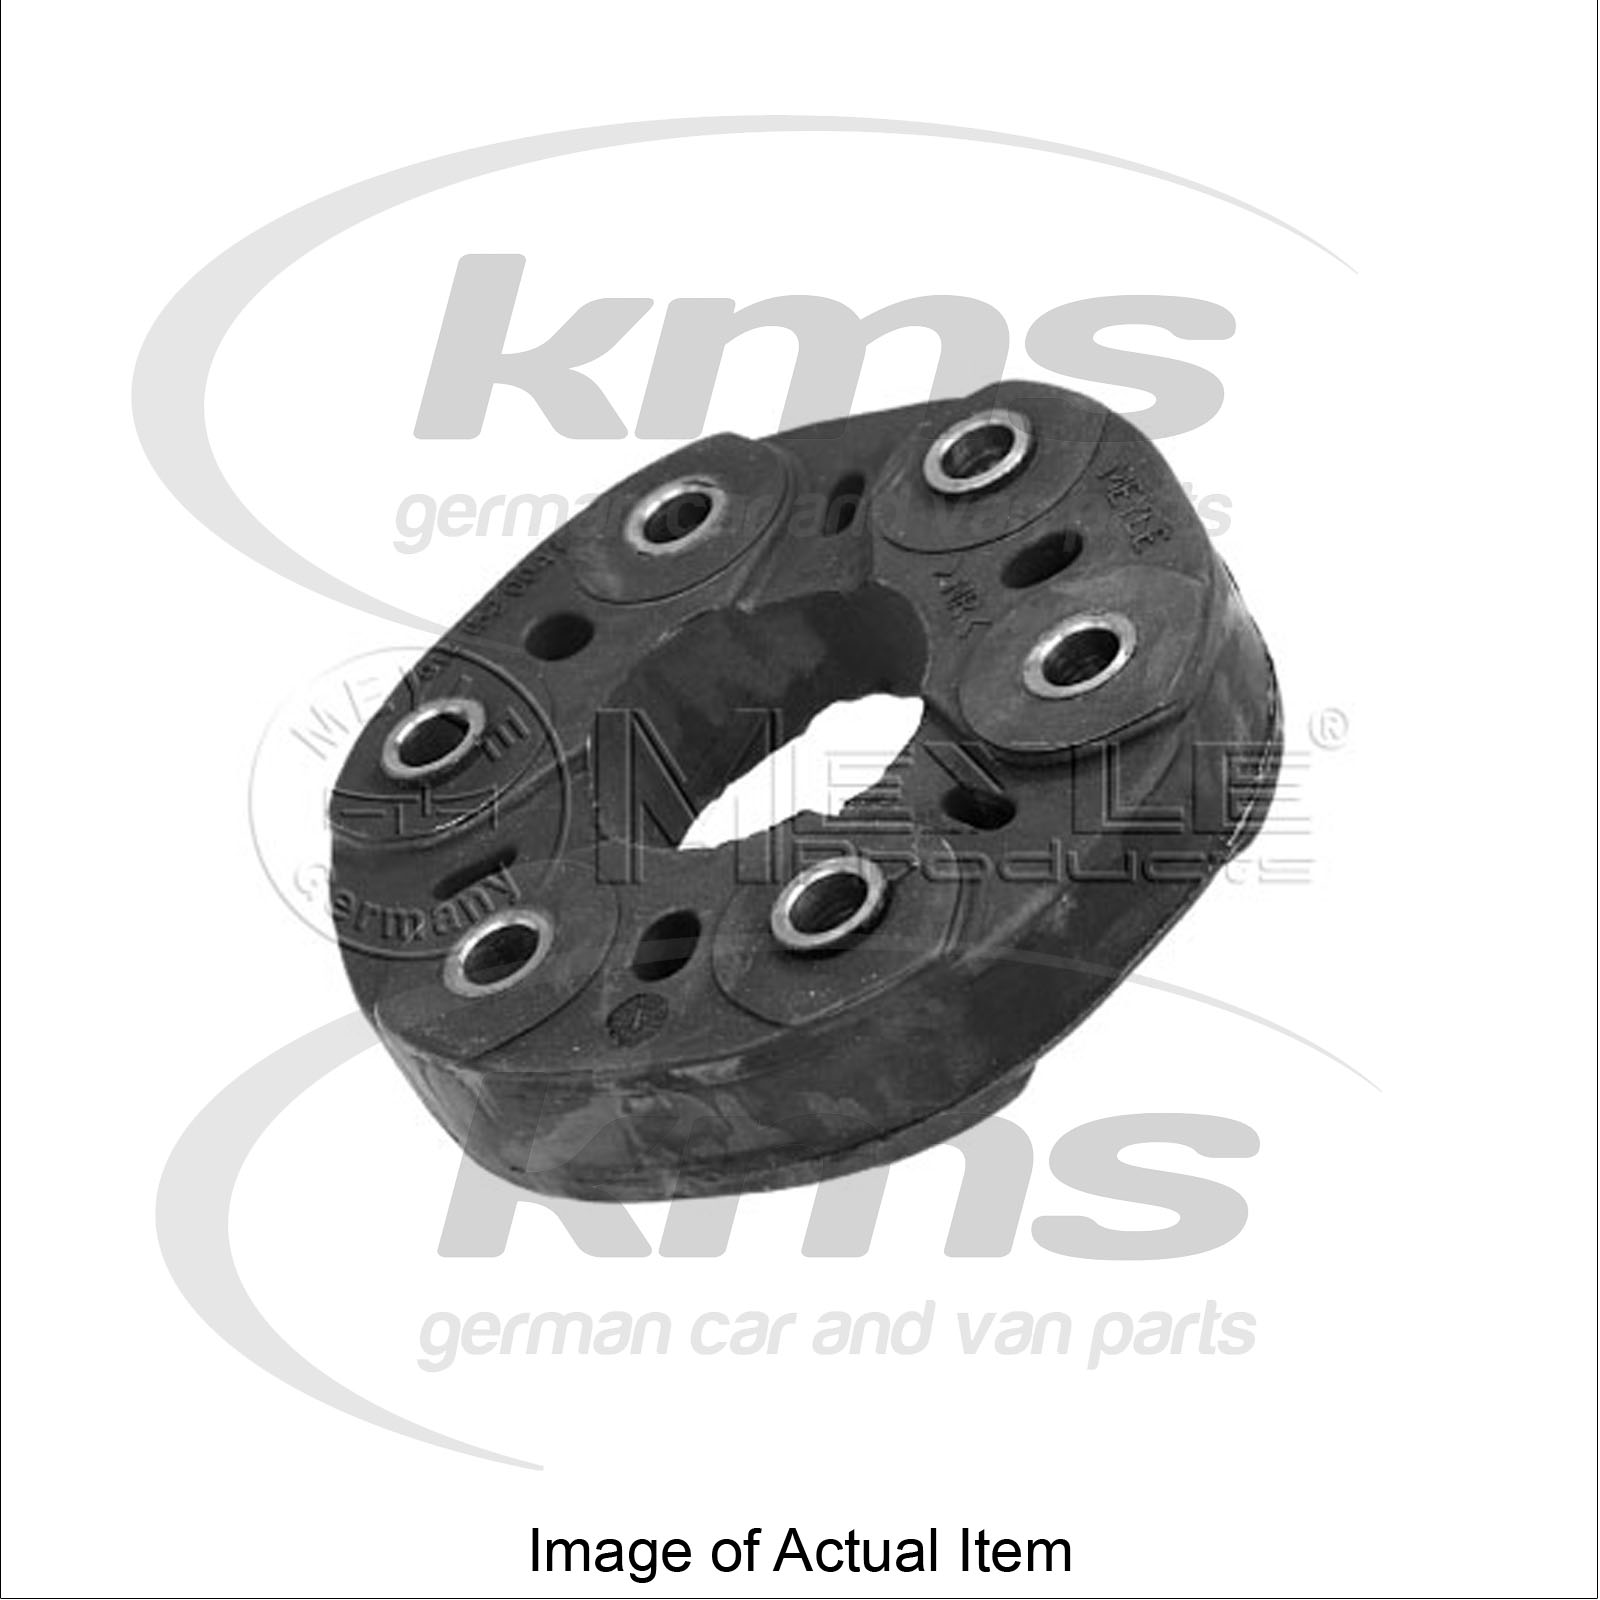 JOINT For PROPSHAFT MERCEDES E-CLASS (W211) E 320 CDI (211